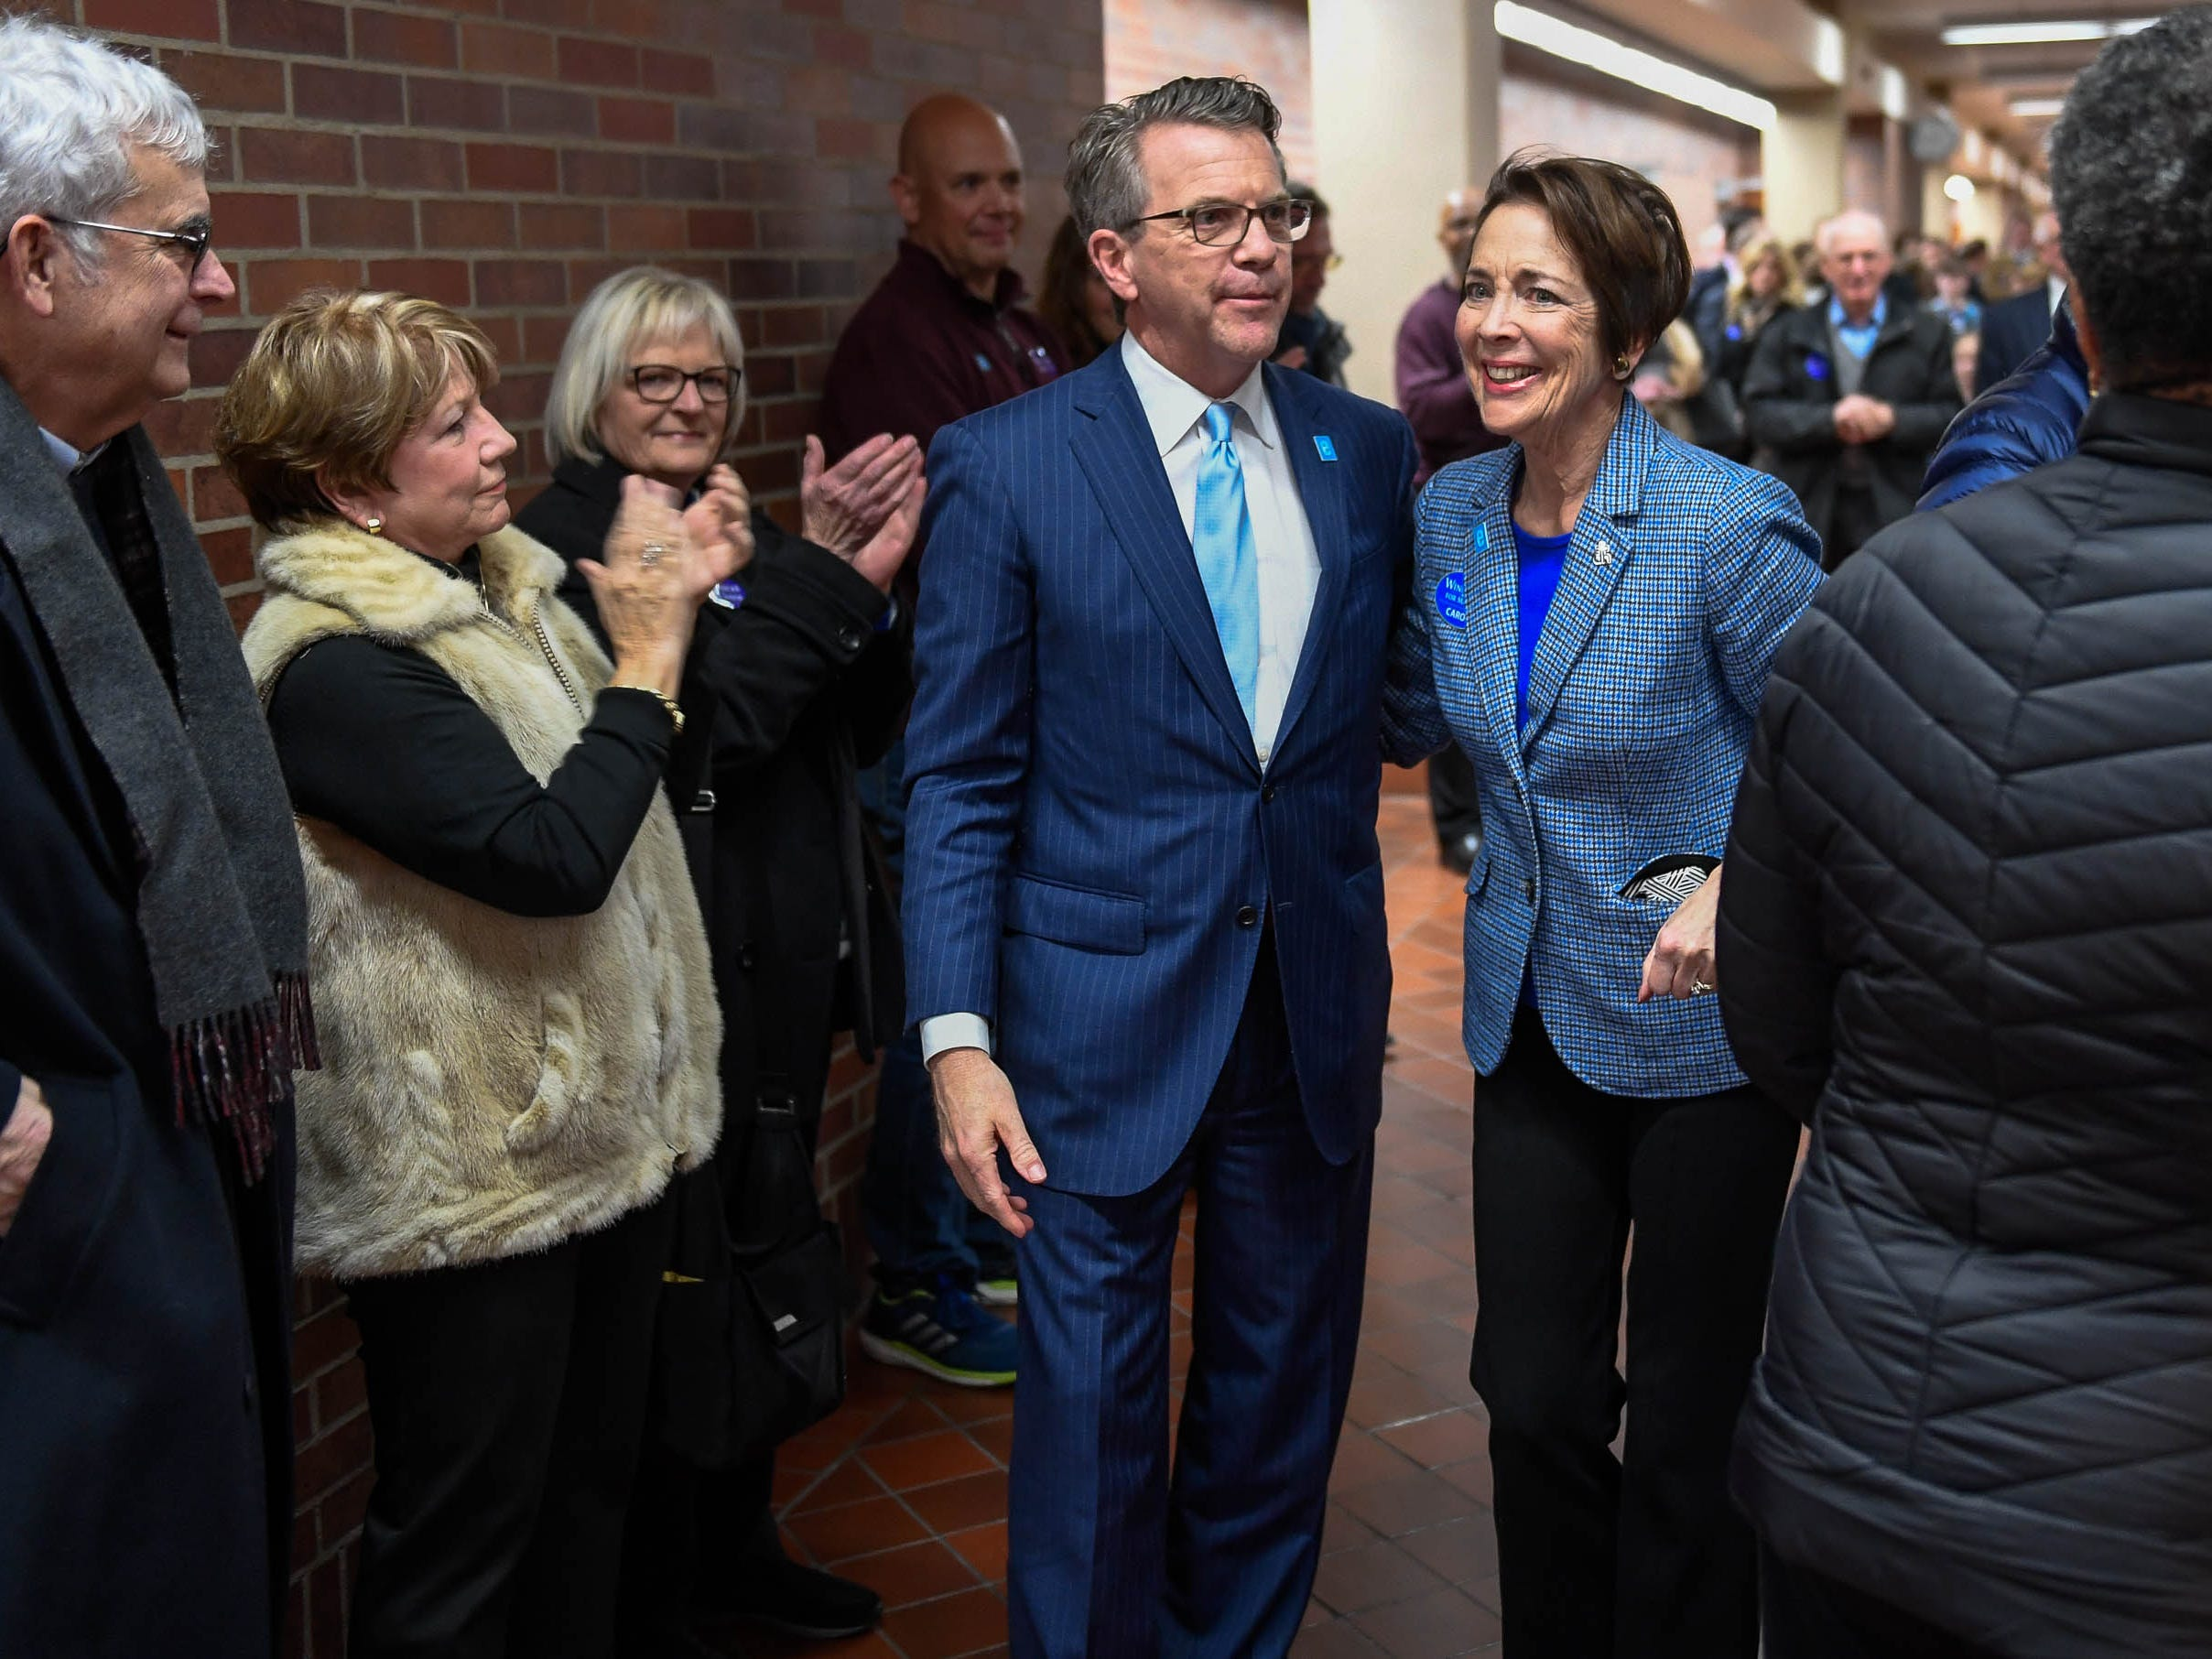 Evansville Mayor Lloyd Winnecke and his wife Carol McClintock make their way through a gauntlet of supporters as he files for re-election at the Vanderburgh County Election Office Wednesday, January 9, 2019.